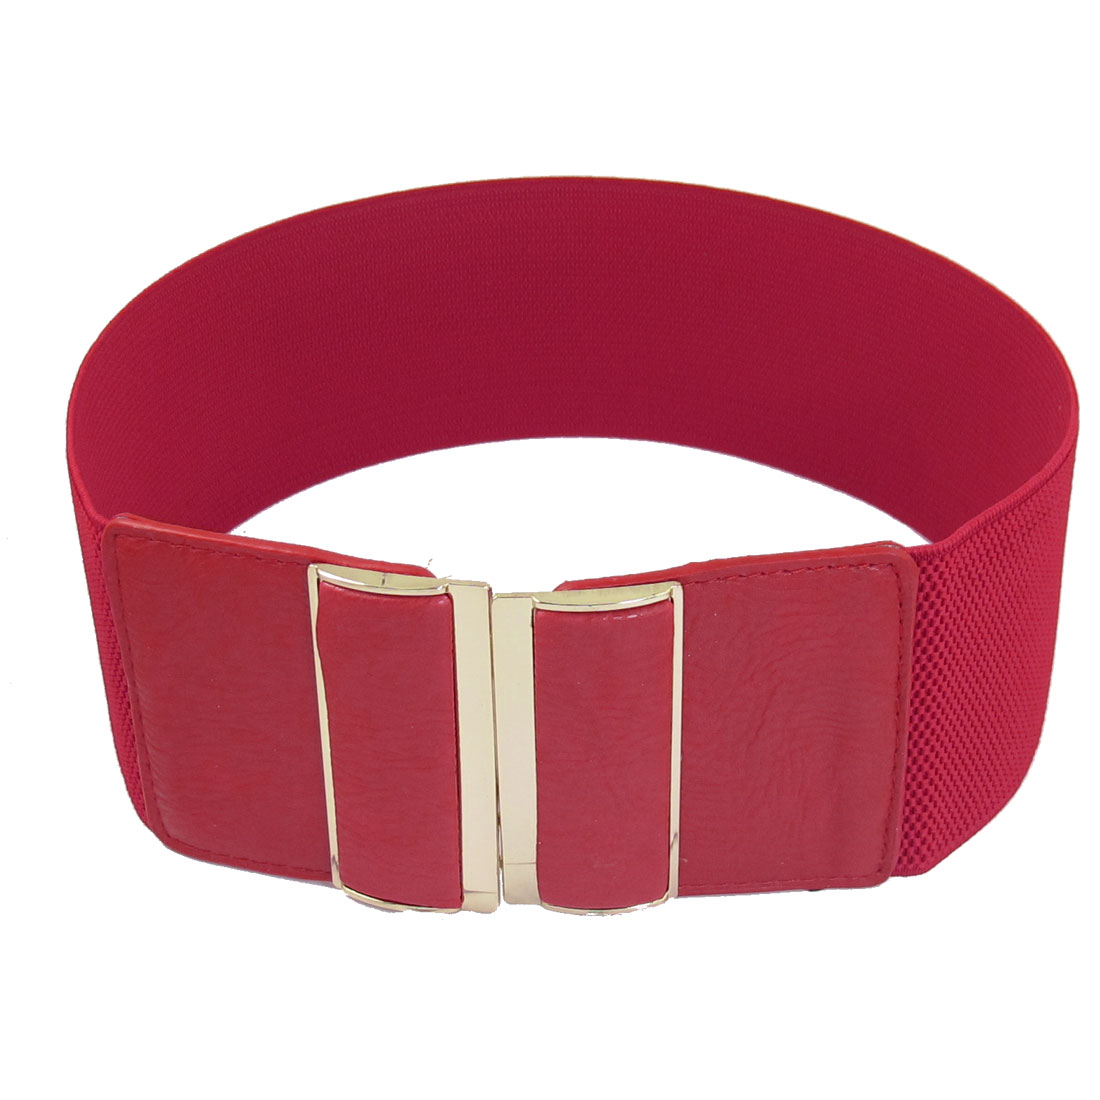 Dark Red Faux Leather Elastic Band Interlocking Buckle Waist Belt 3 Inches Width for Women